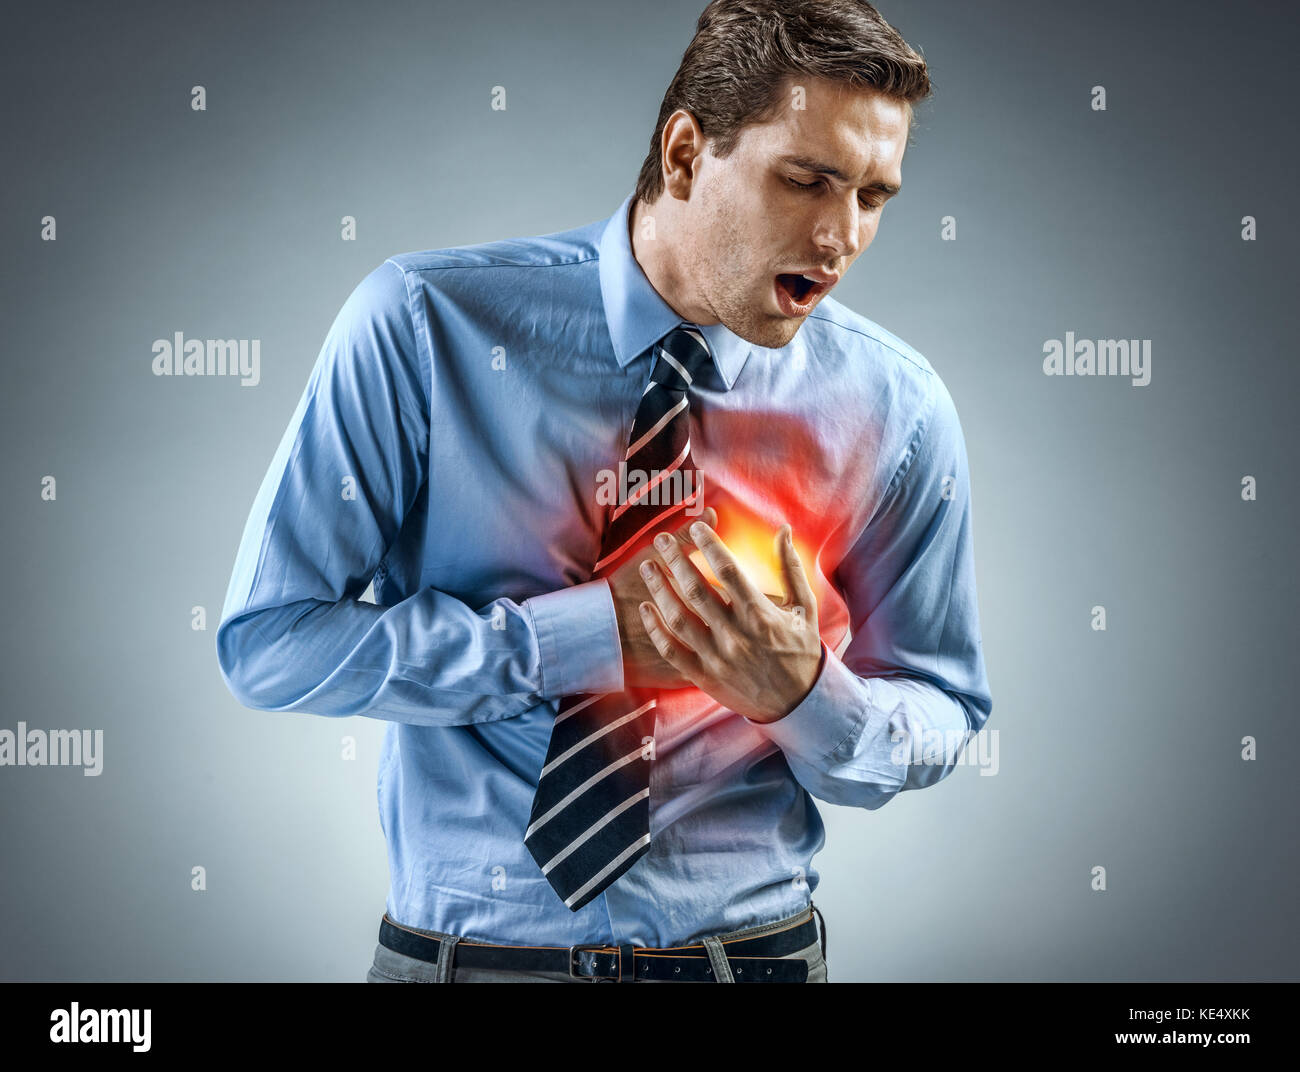 Office manager having heart attack. Medical concept. - Stock Image